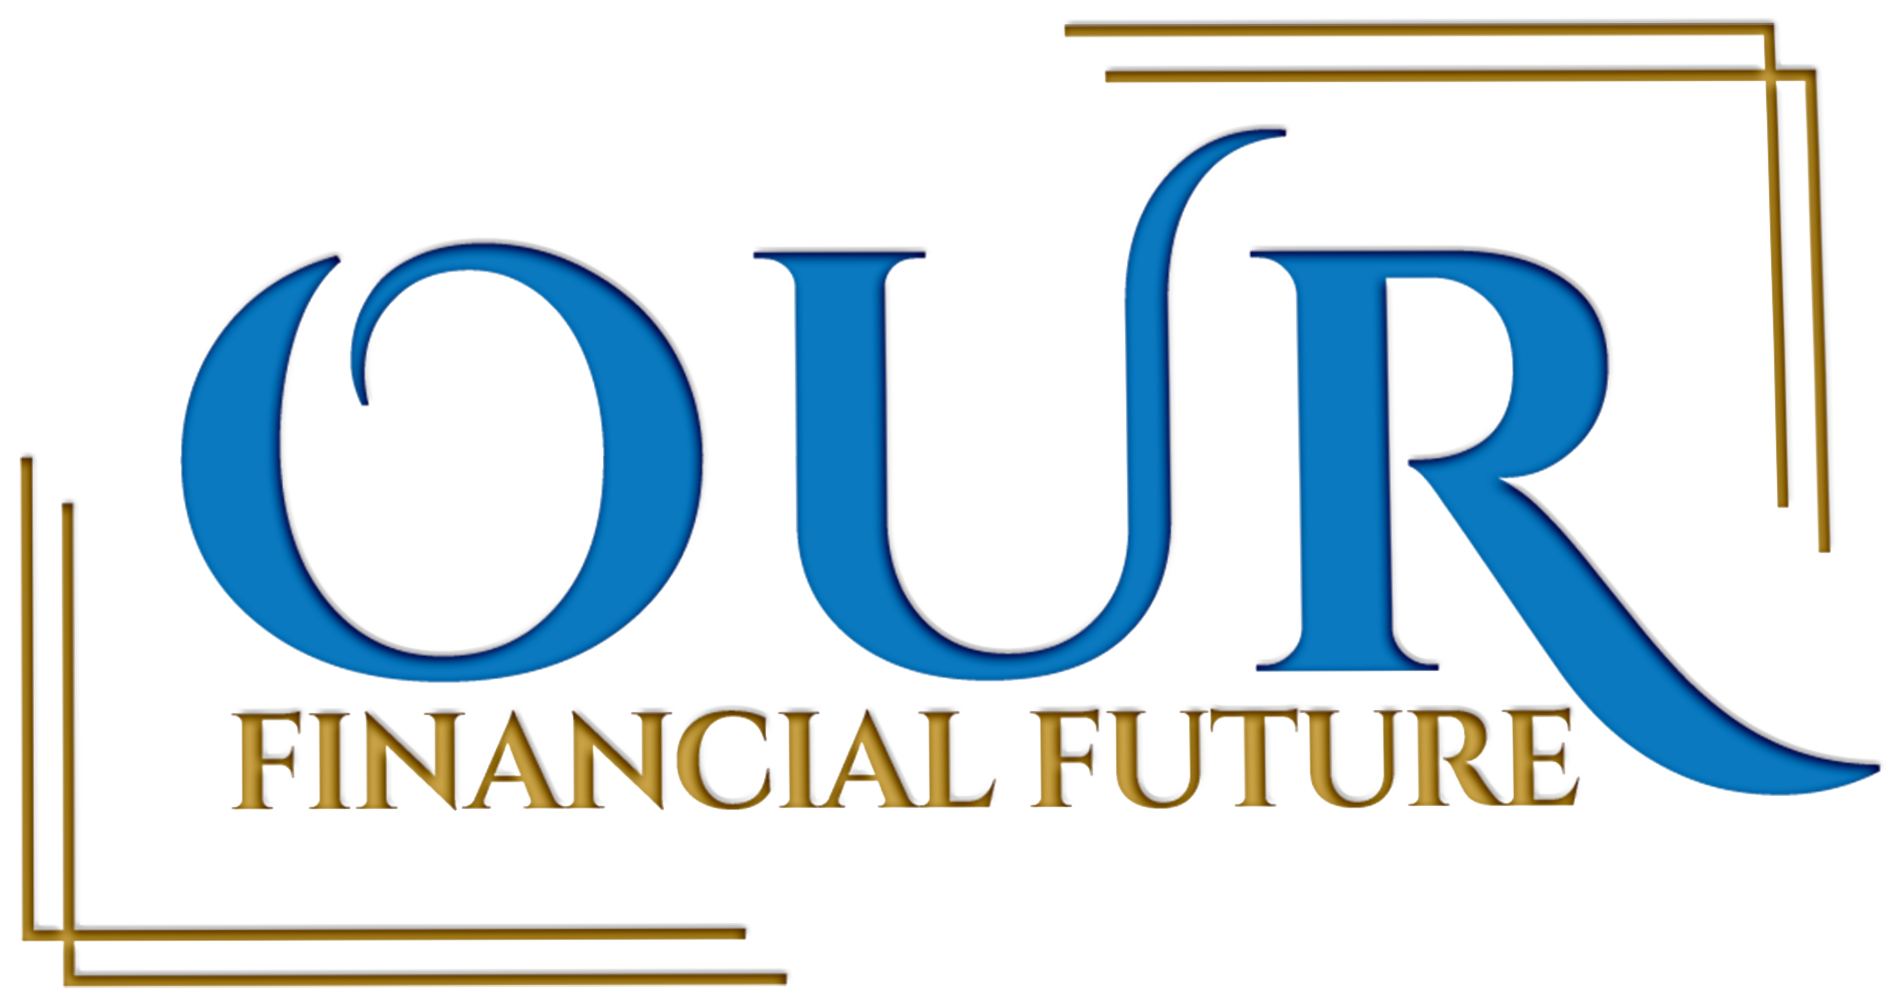 Our Financial Future